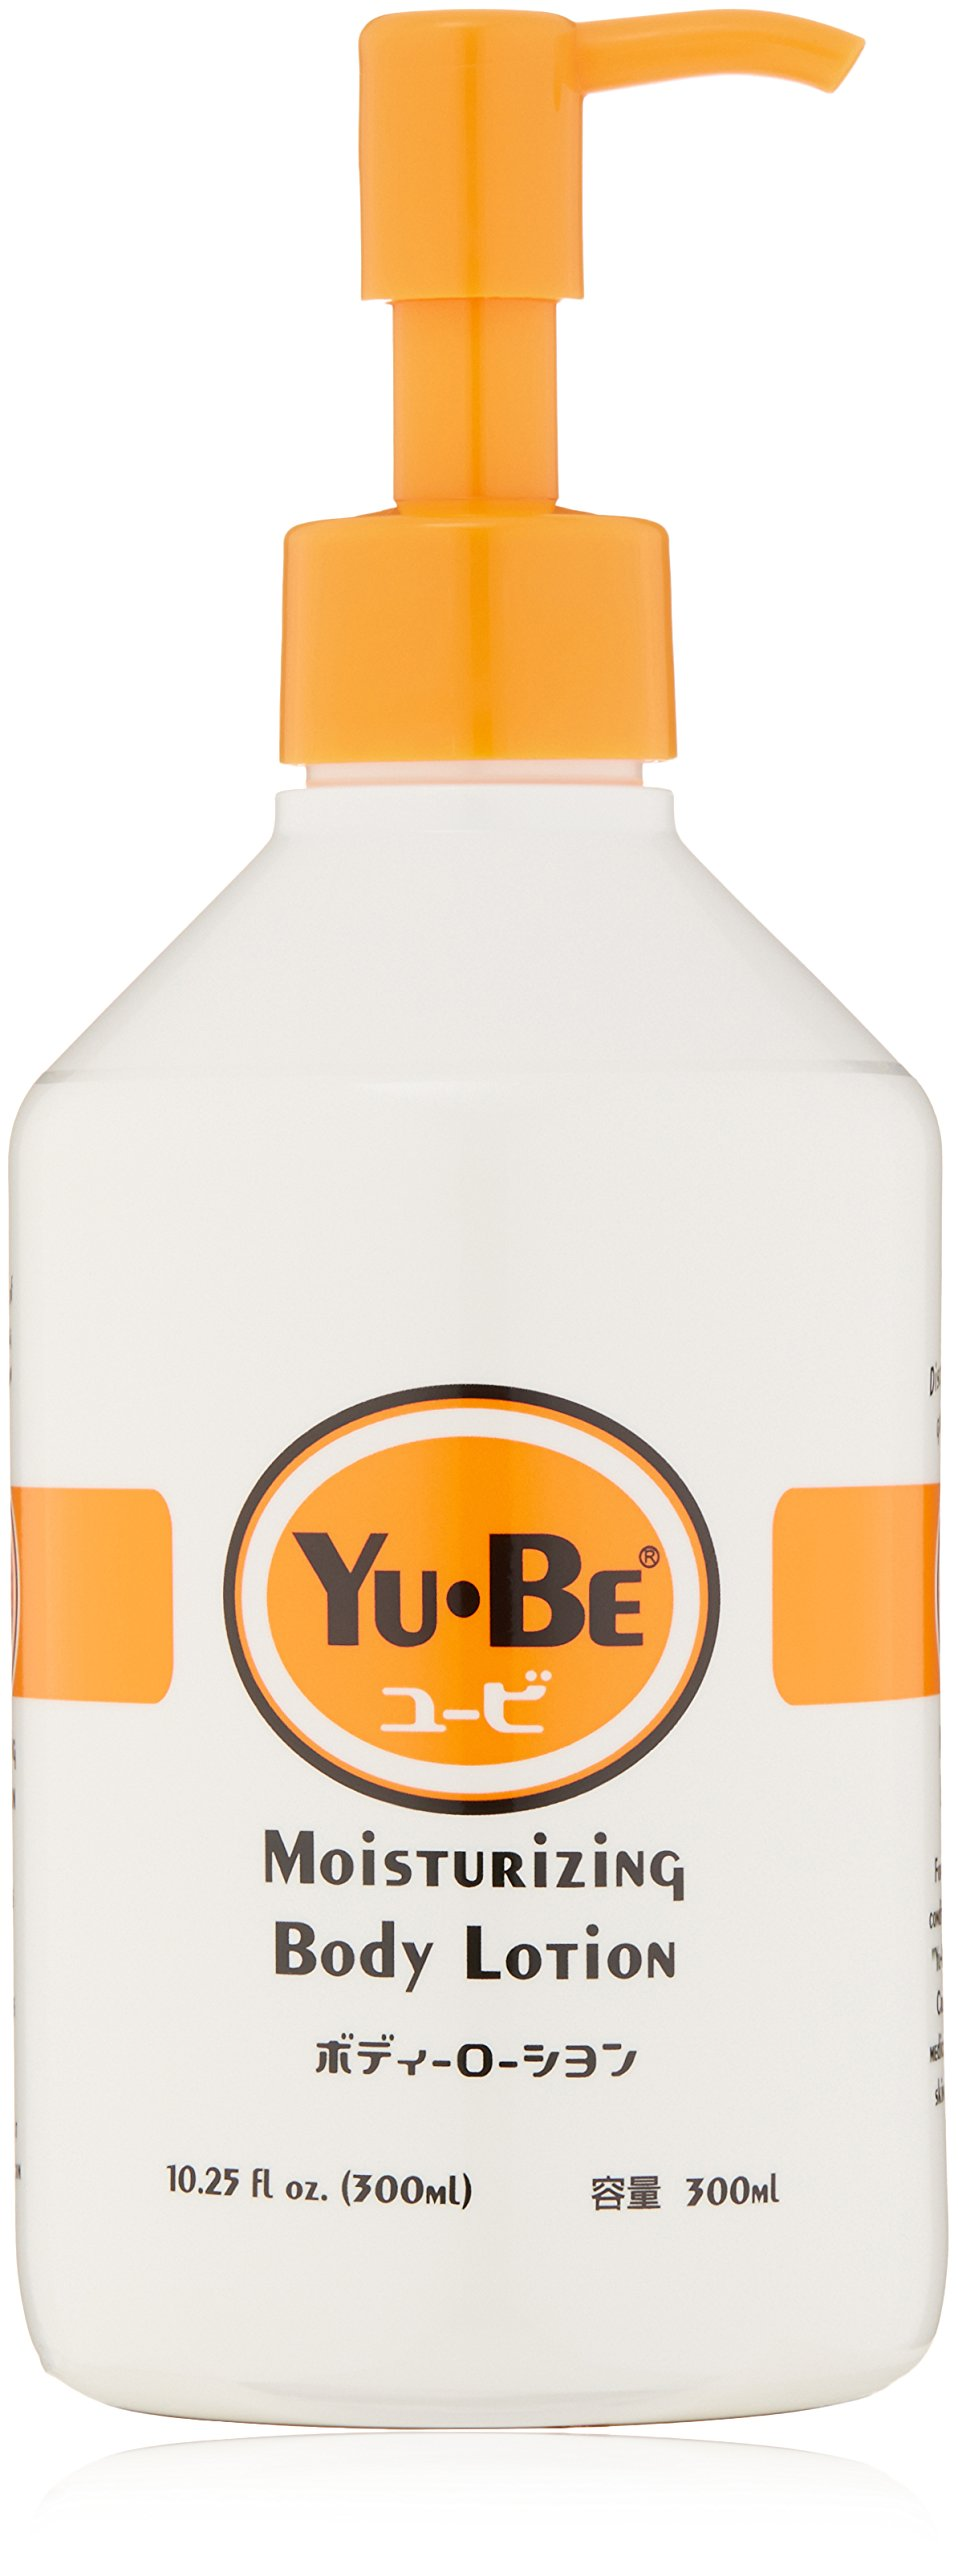 Yu-Be: Japan's secret for dry skin relief. Deep hydrating moisturizing lotion for hand and body. Fast acting & non-greasy. No artificial colors or fragrances. Jar, 10.25 Fl Oz